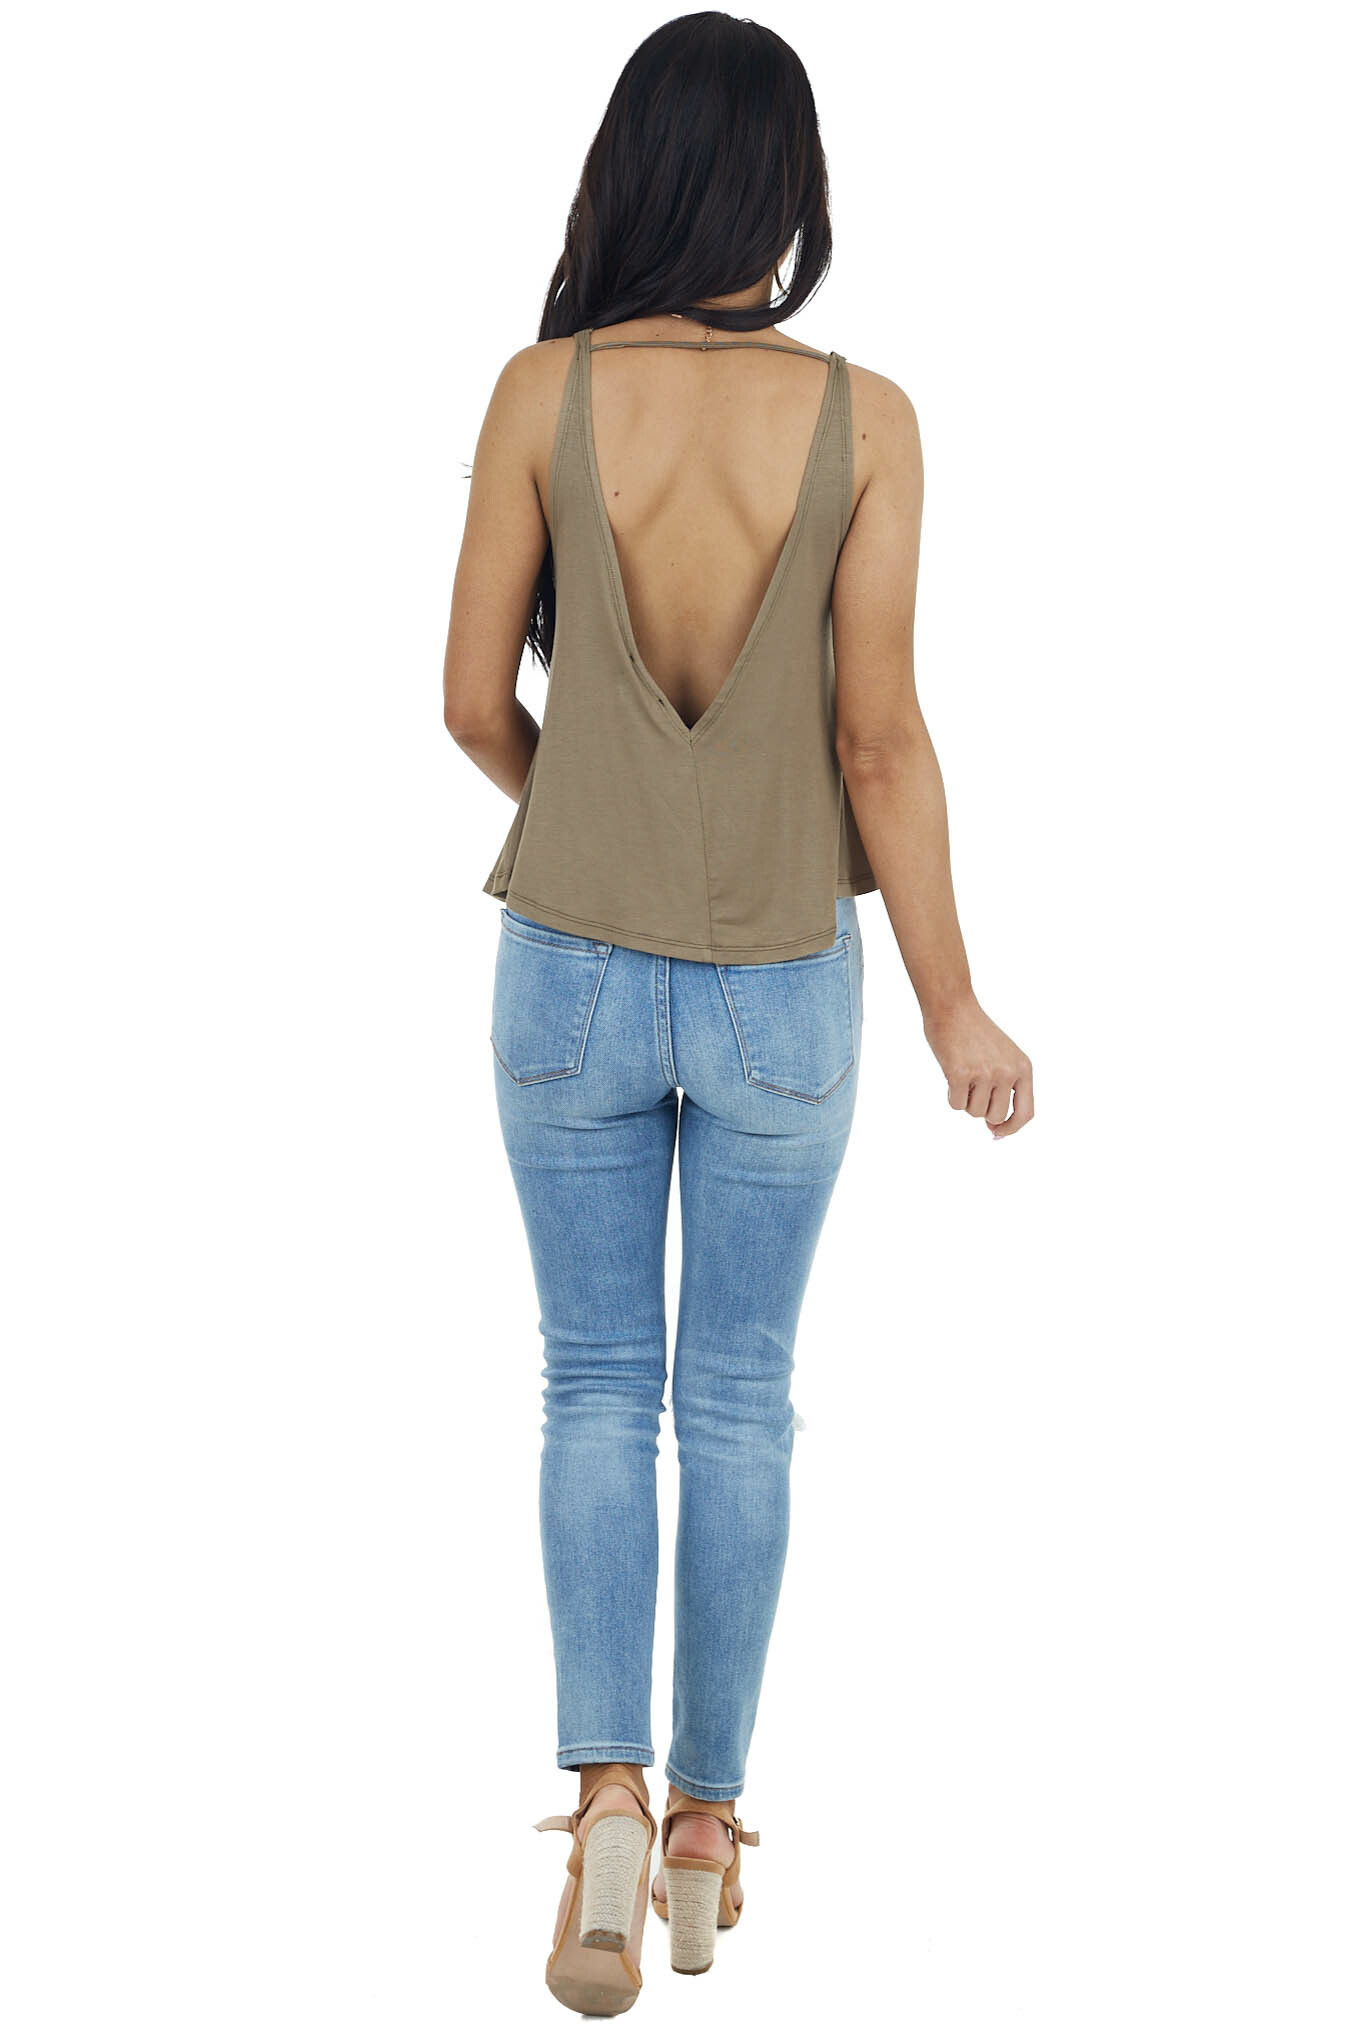 Olive Knit Tank Top with Low Cut Back and Button Details